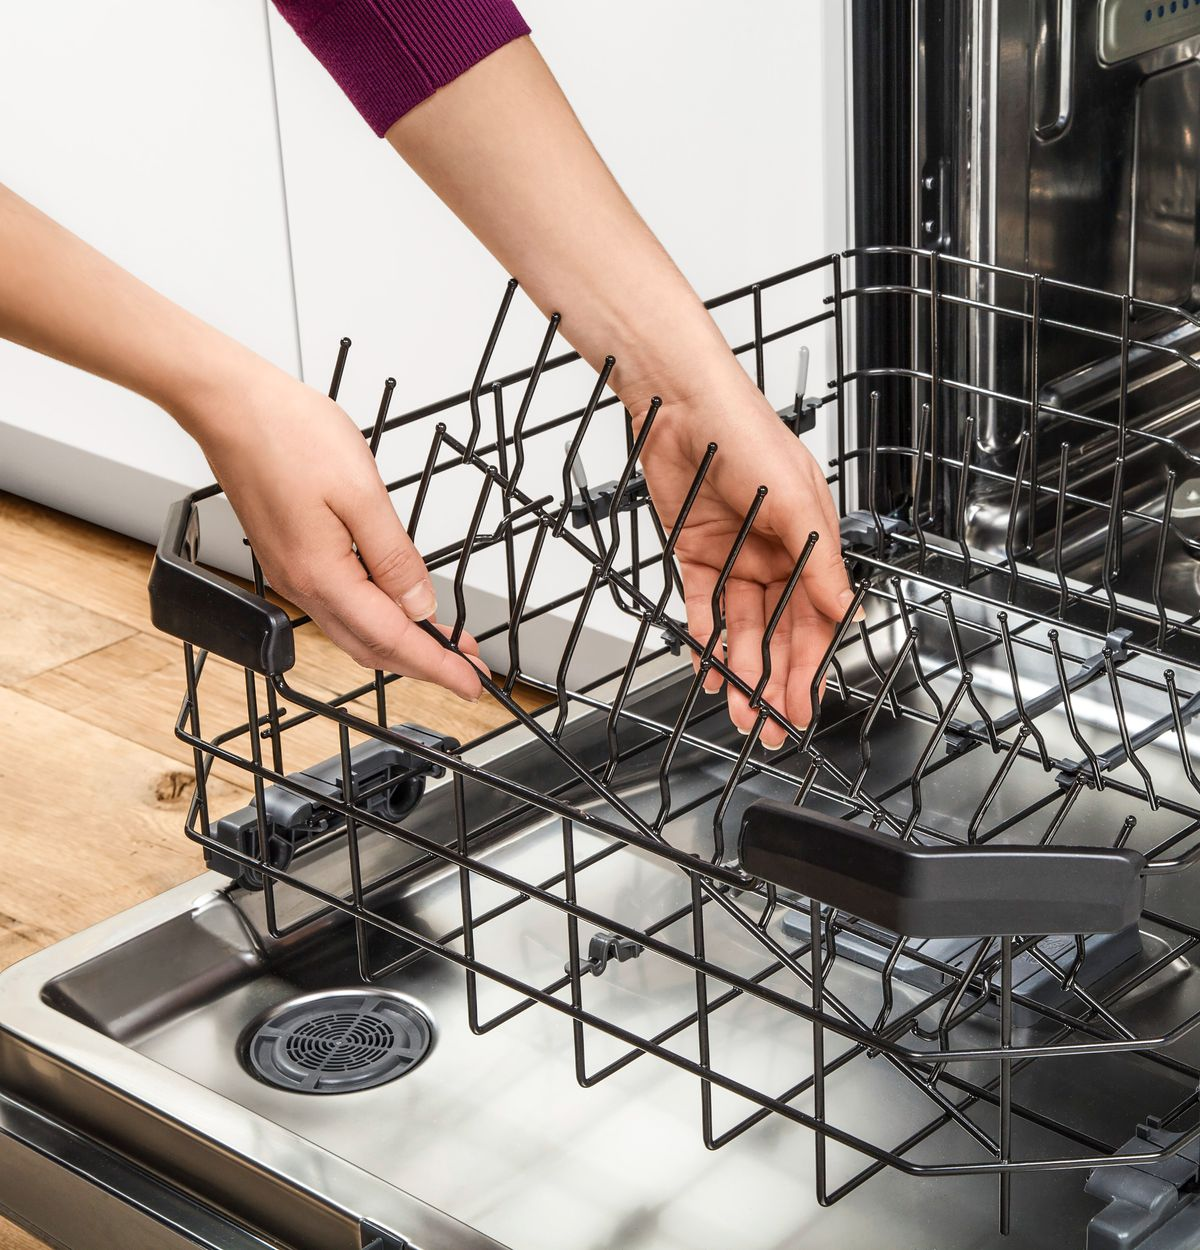 Person cleaning dishwater rack.